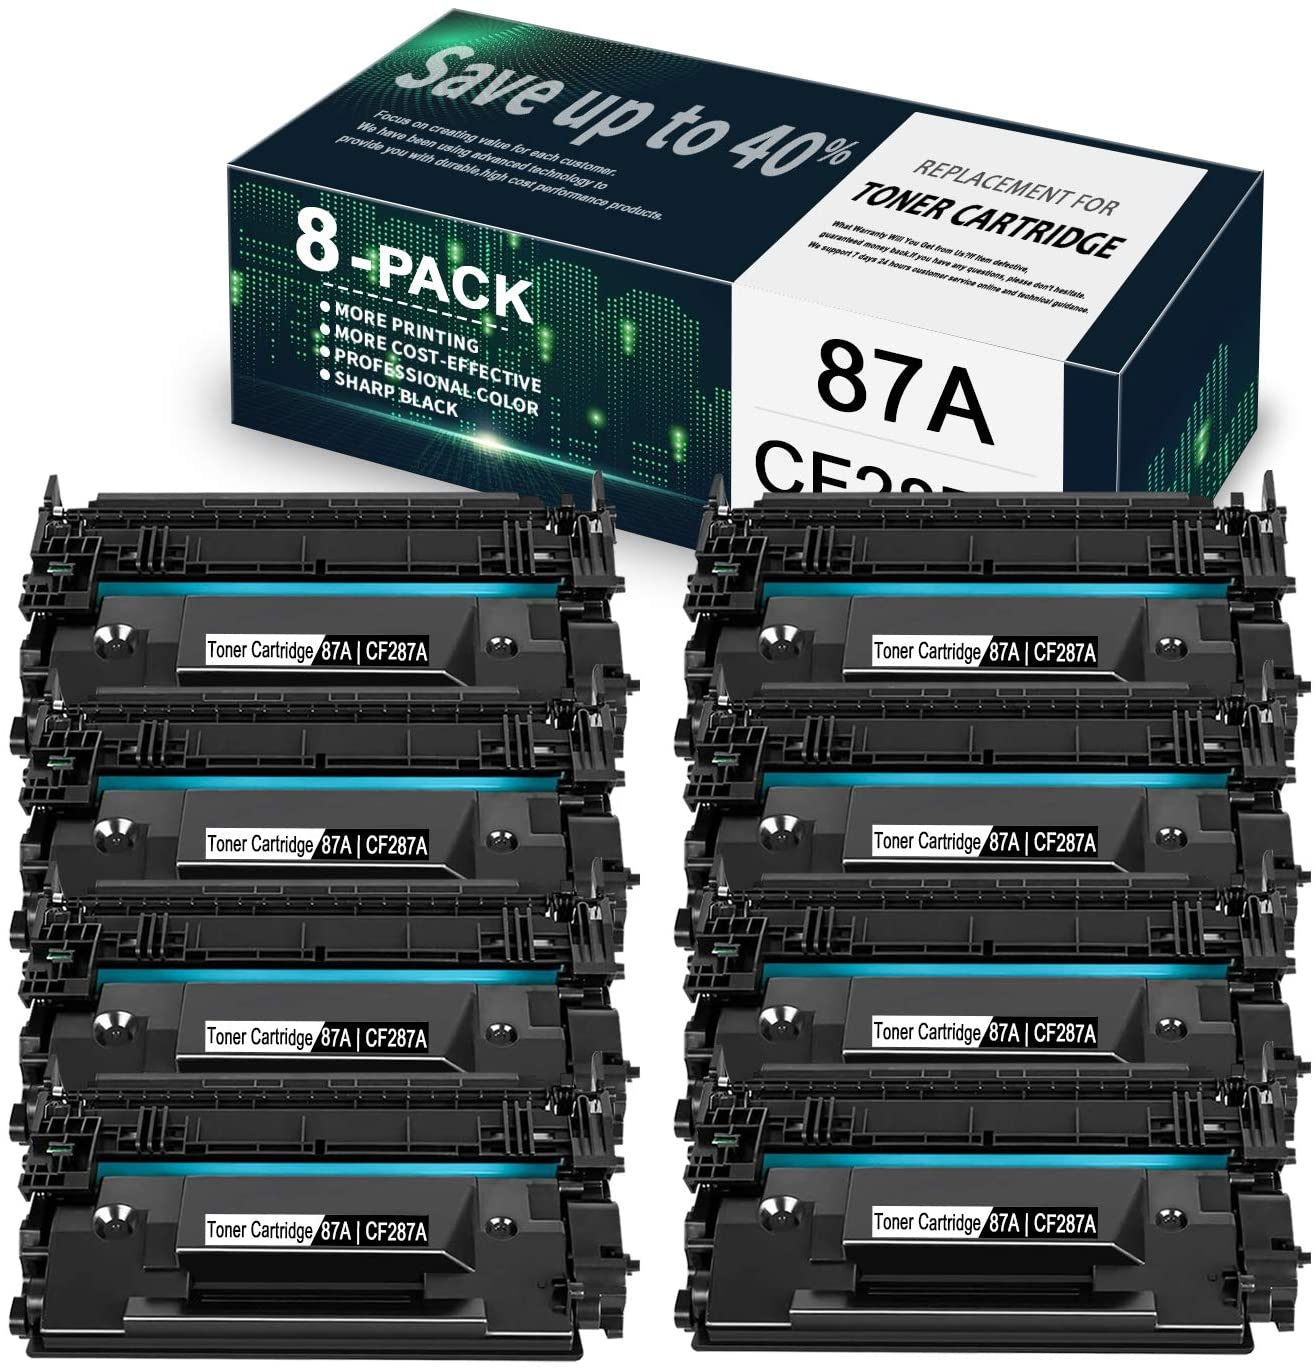 8-Pack Black 87A | CF287A Compatible Toner Cartridge Replacement for HP Laserjet Managed M506xm M501dn M506n M506dn M527z M527c M506dnm M527dn M501n M527f Printer, Toner Cartridge.